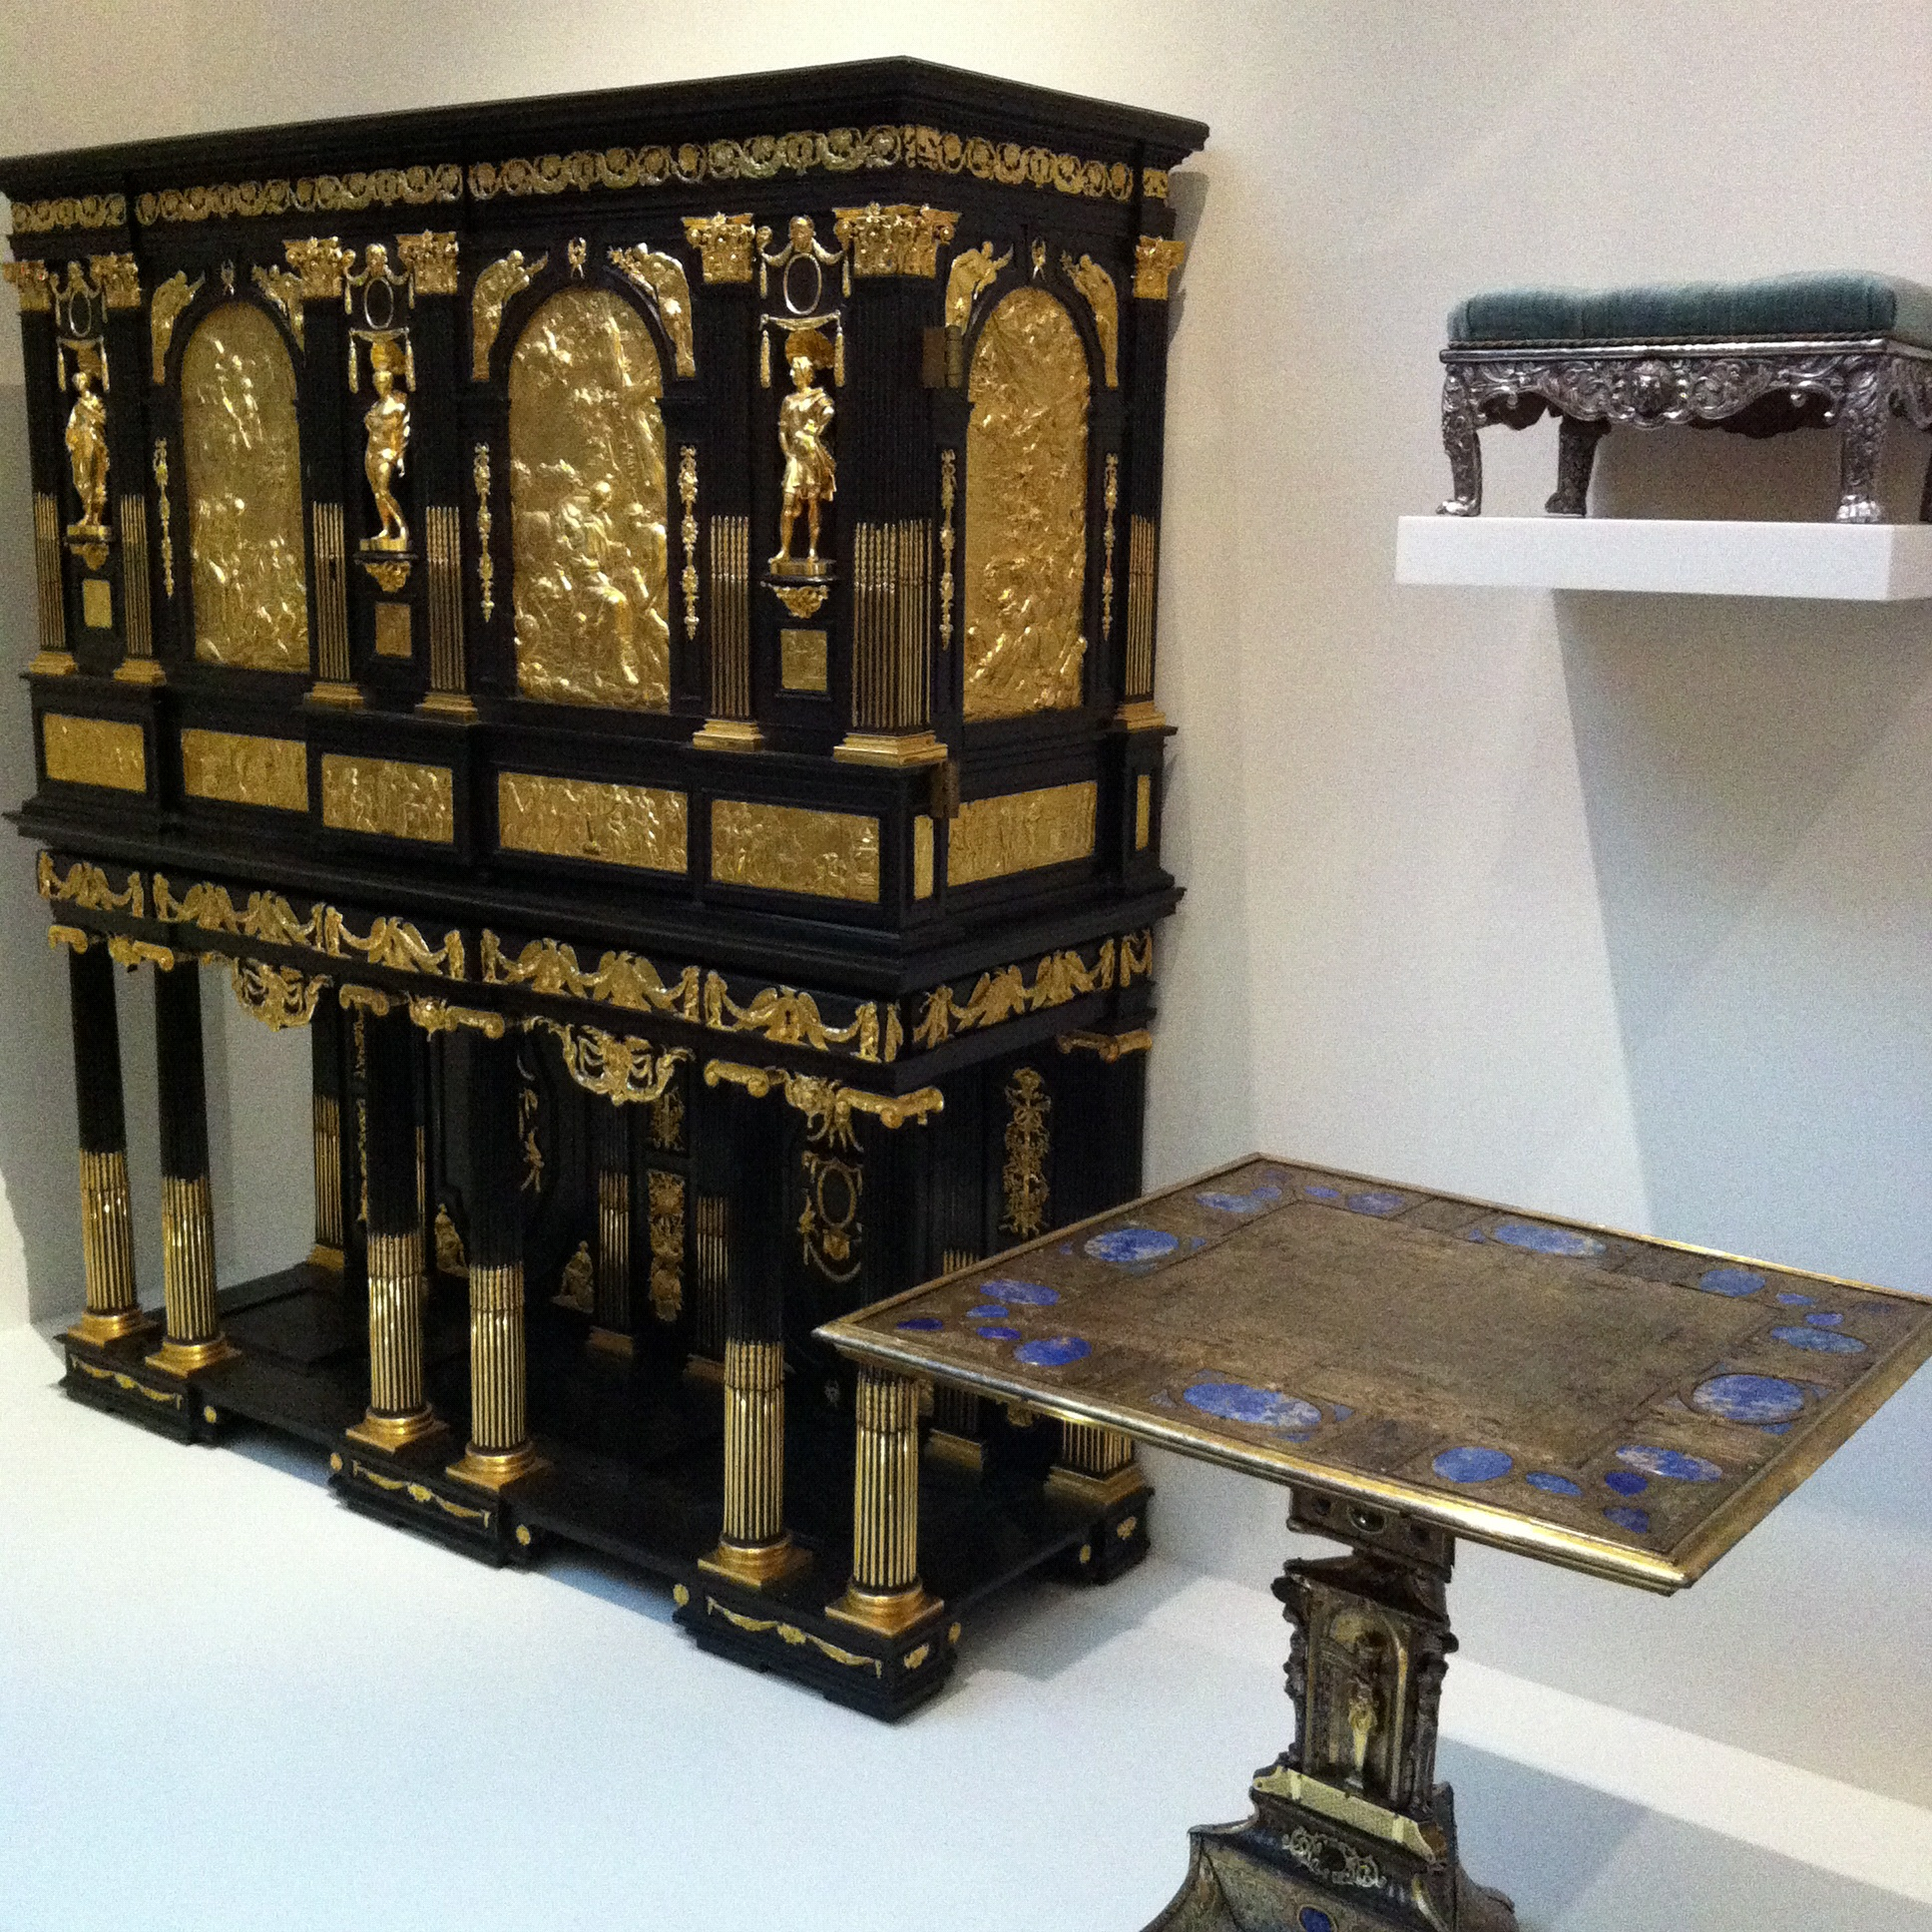 17th Century Parisian 'Marie de Medici' cabinet with ebony veneer and gilded brass plaques depicting scenes from a romantic poem